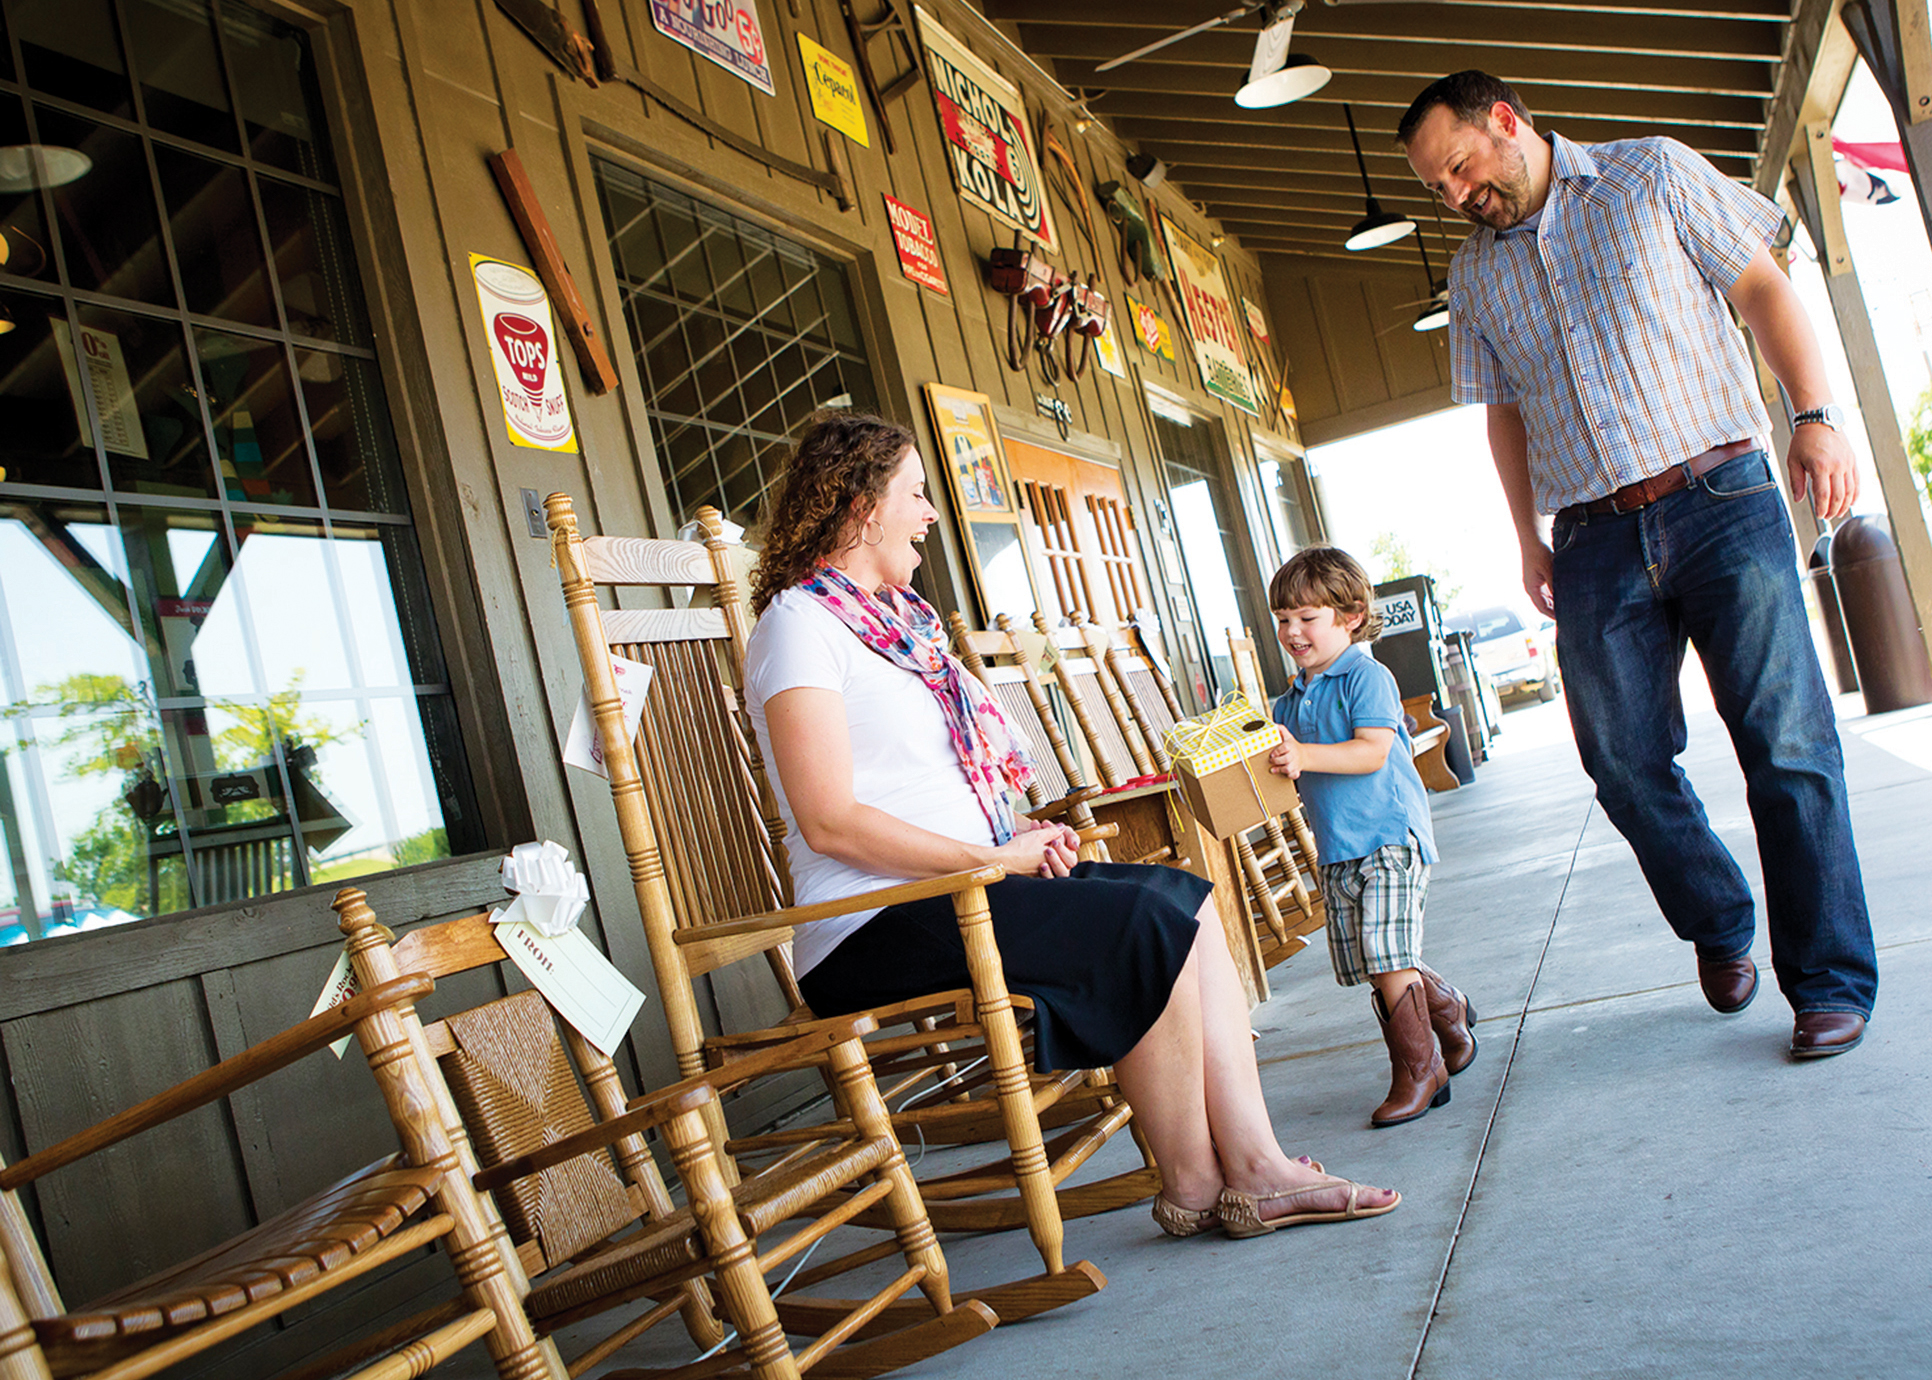 Restaurant Retail Combo Keeps Customers In Tune With Cracker Barrel Nation S Restaurant News The company was founded by dan evins in 1969; restaurant retail combo keeps customers in tune with cracker barrel nation s restaurant news